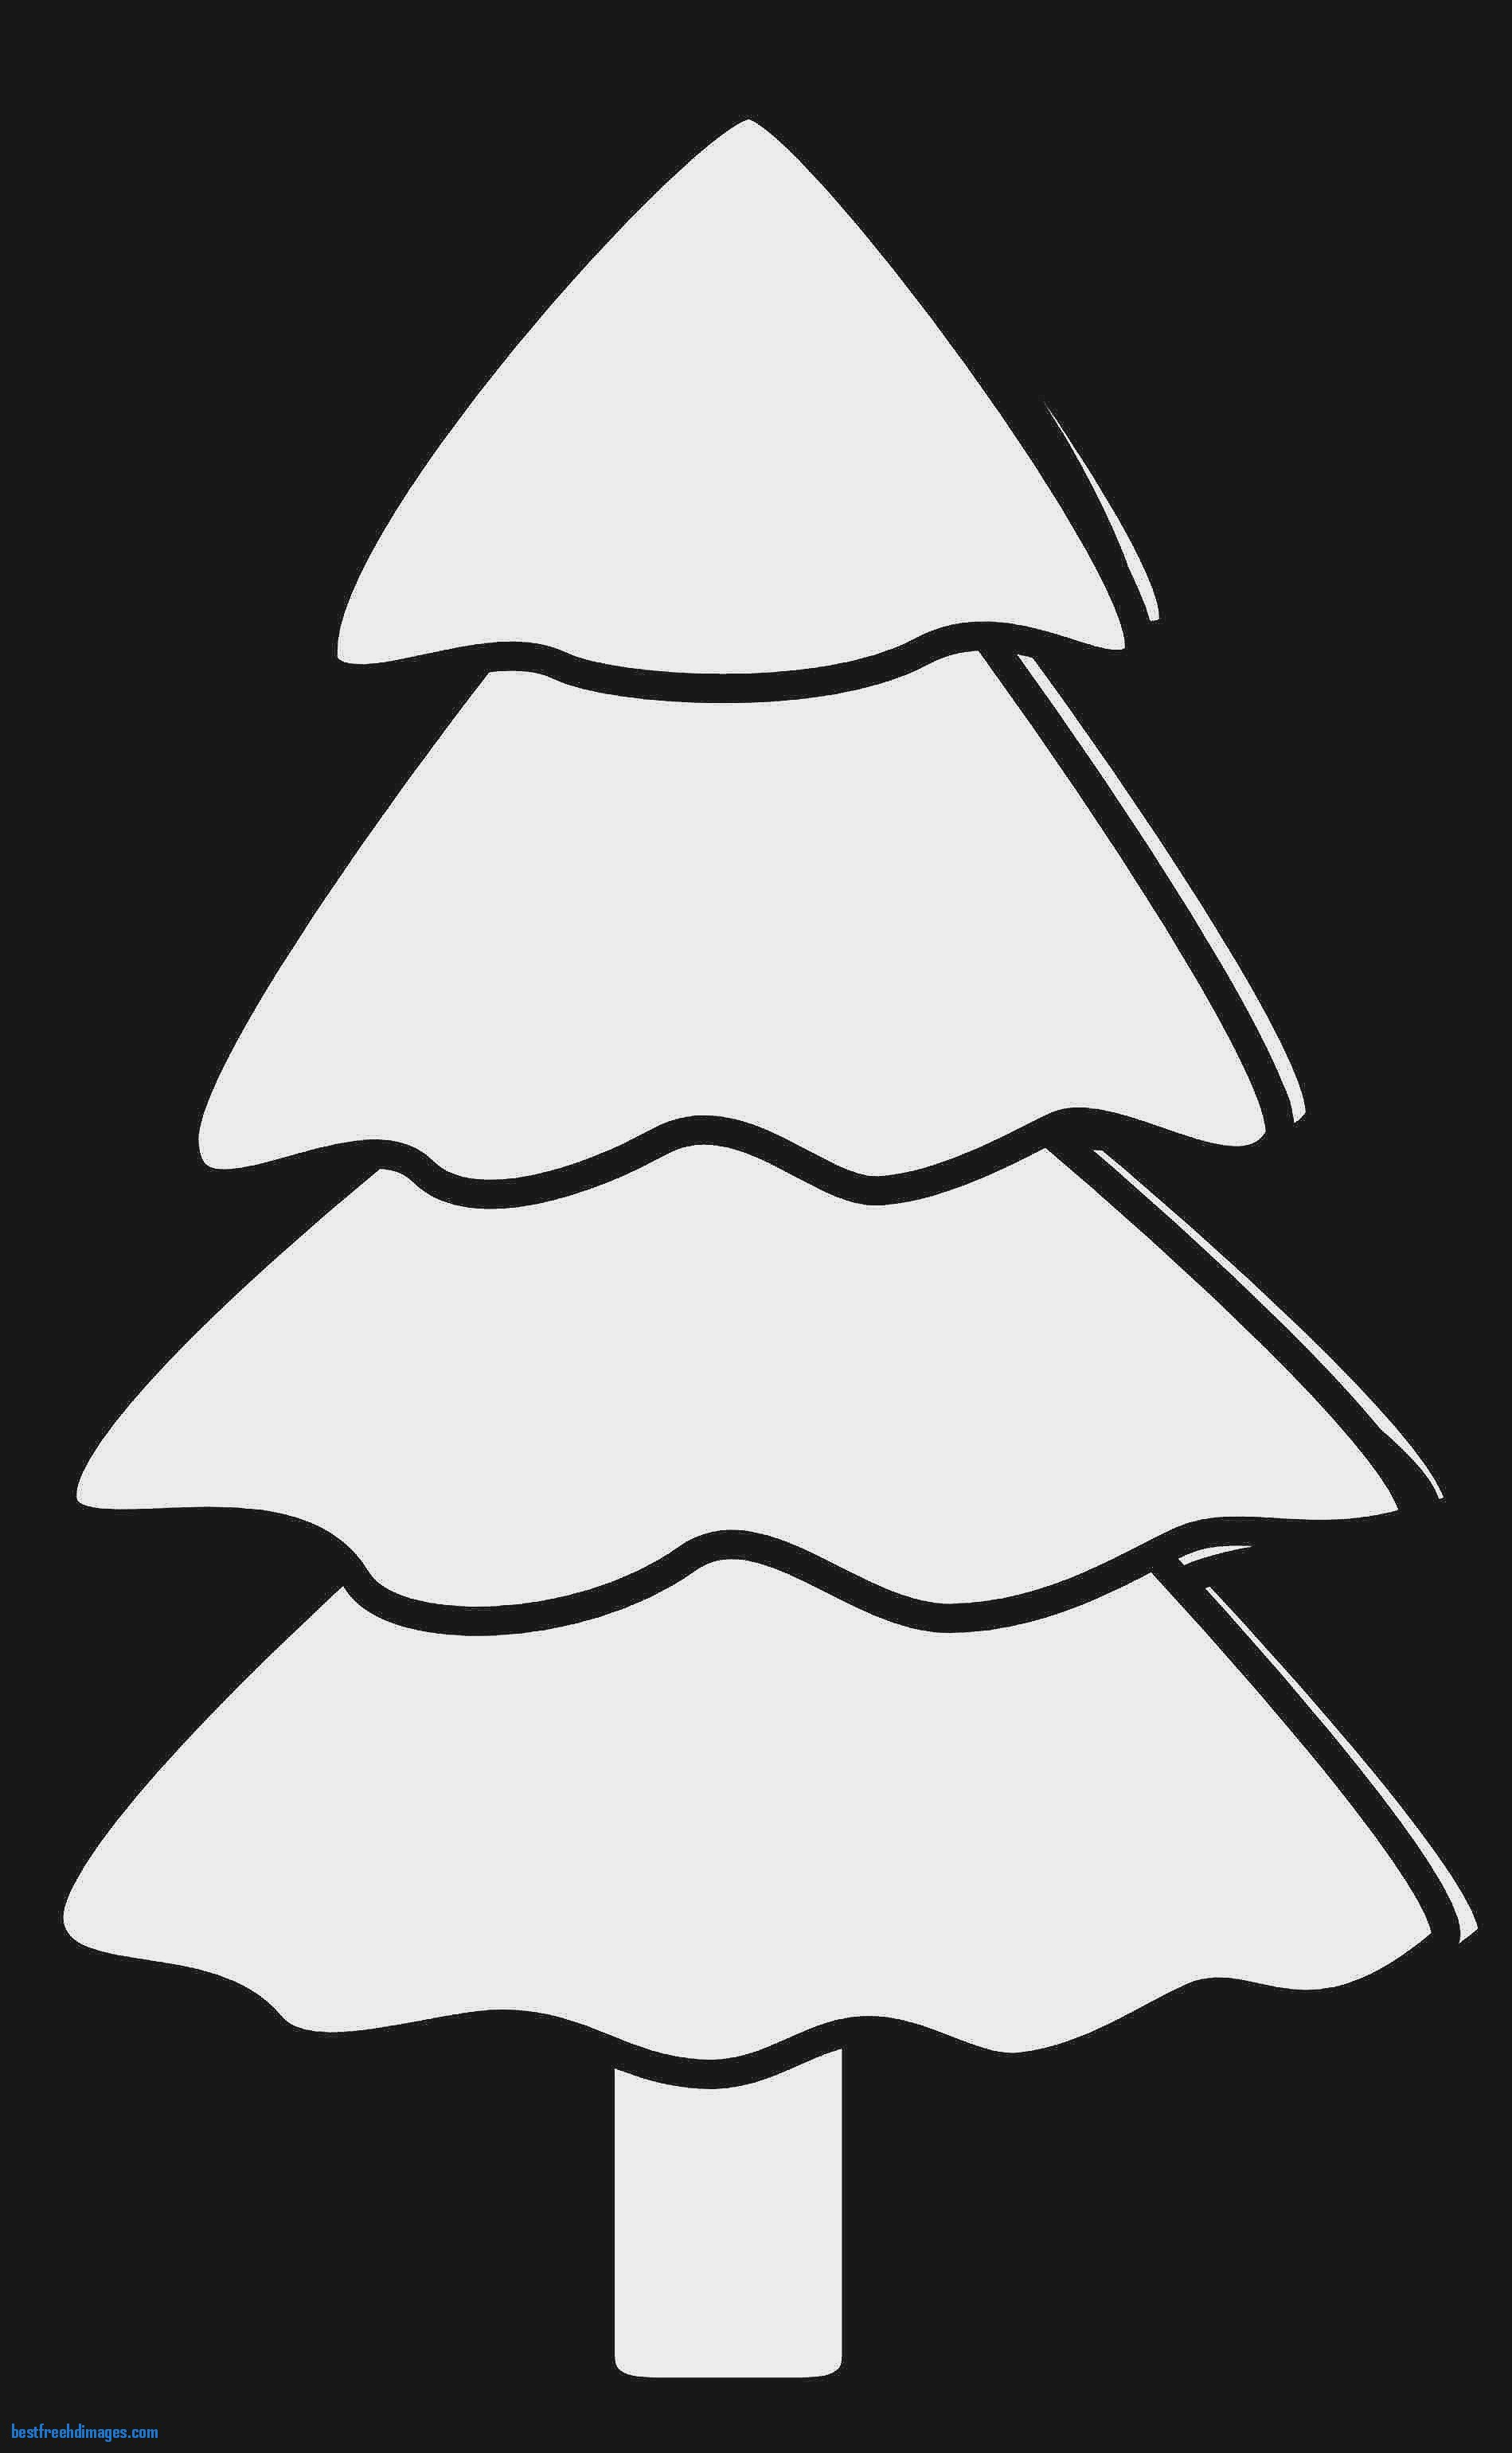 Charlie Brown Christmas Tree Clipart | Free download on ClipArtMag